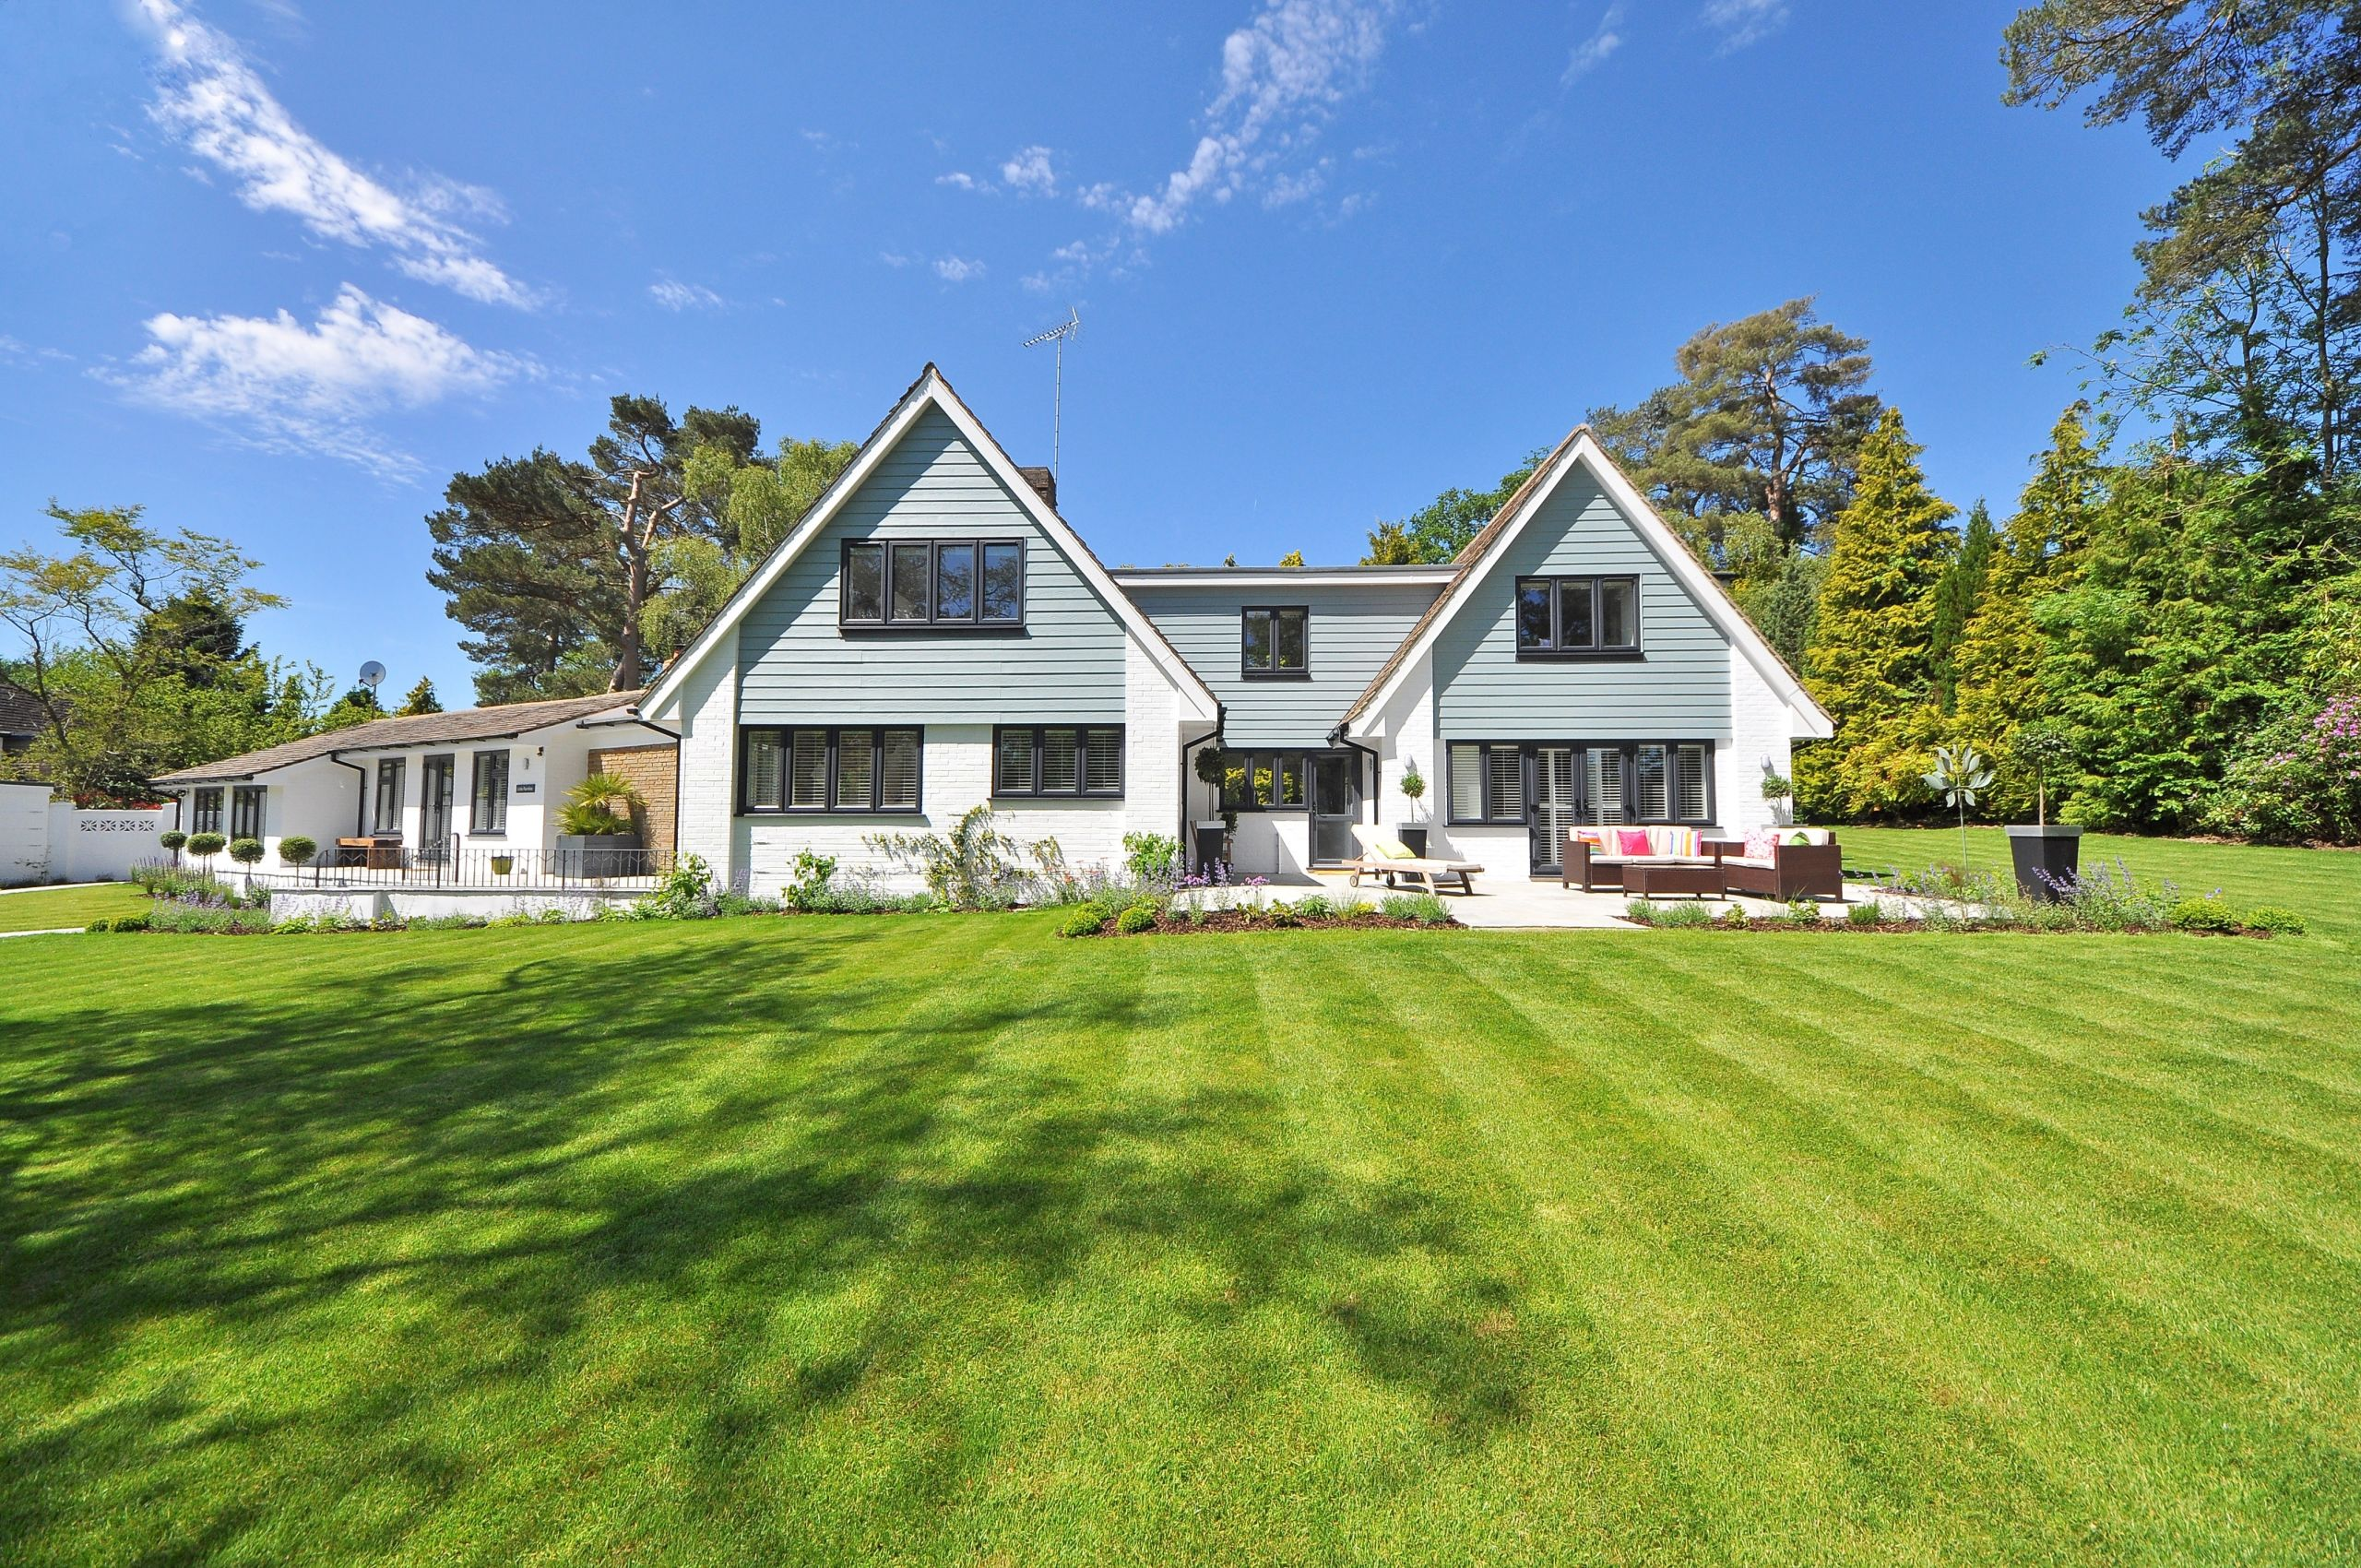 Charming and classically inspired properties